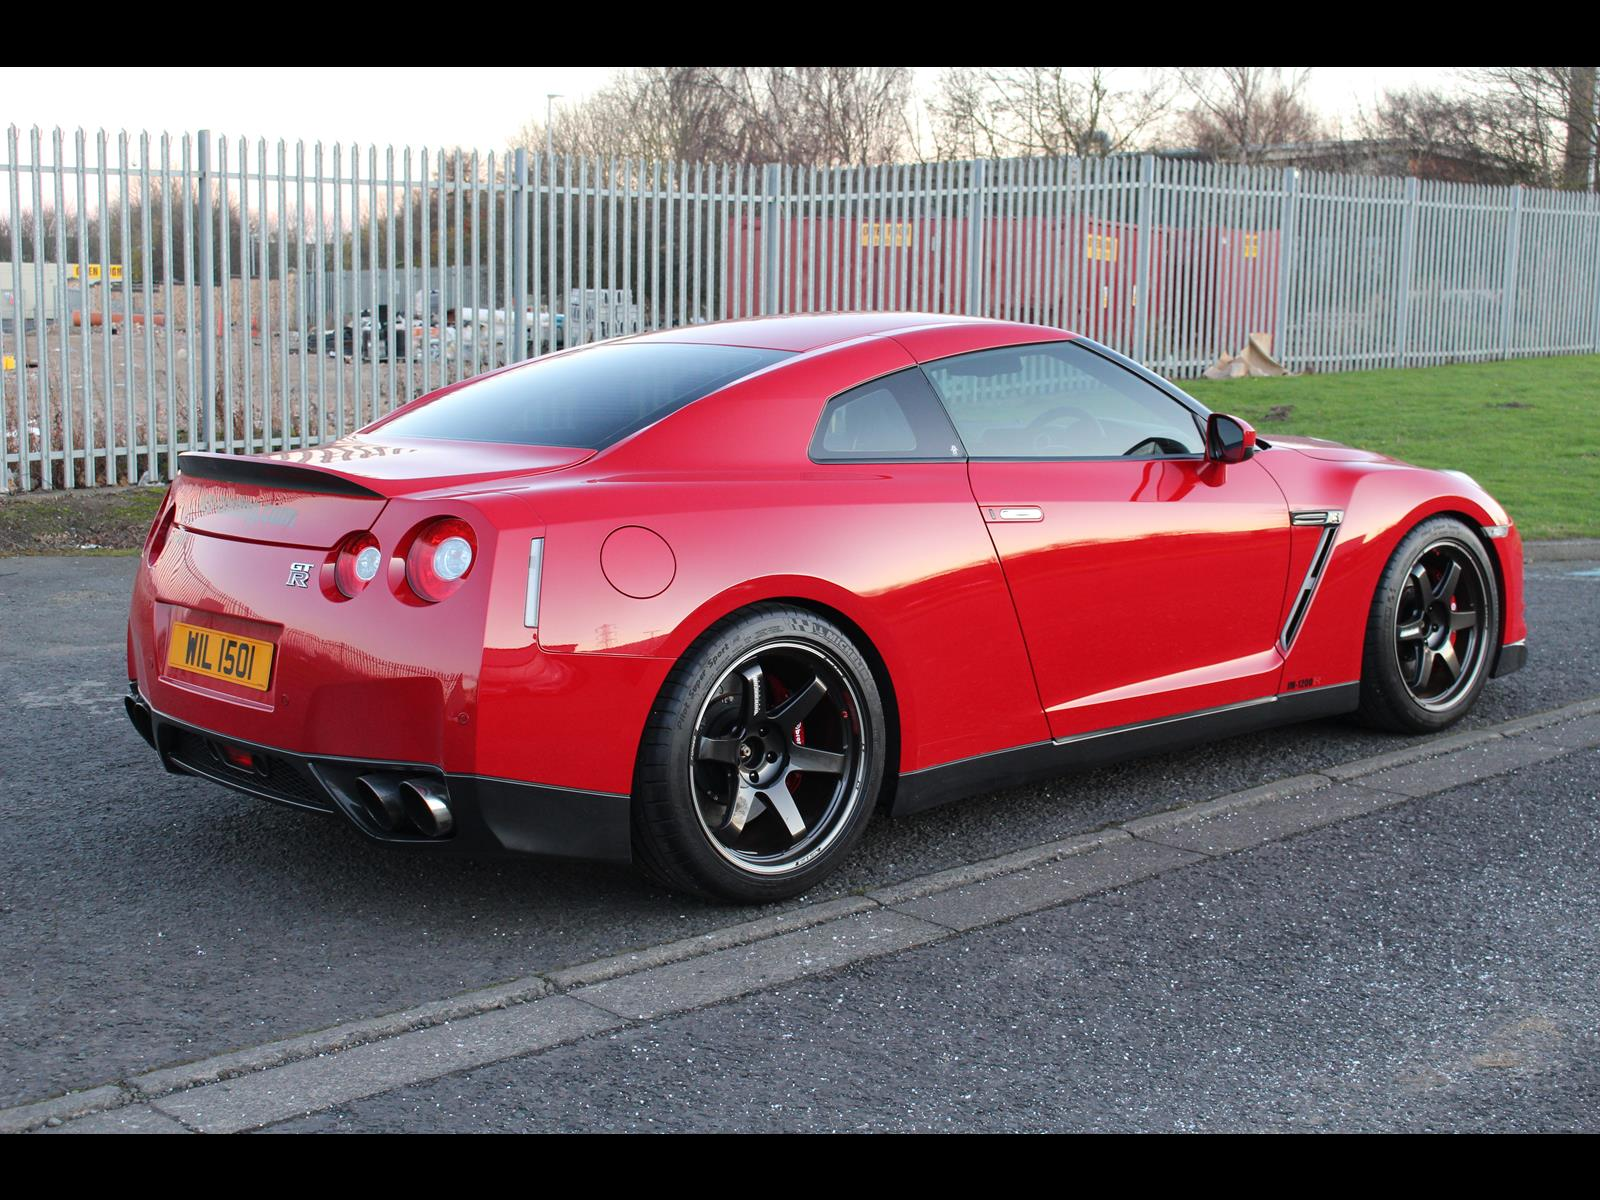 2010 nissan r35 gtr jm1200r uk spec. Black Bedroom Furniture Sets. Home Design Ideas